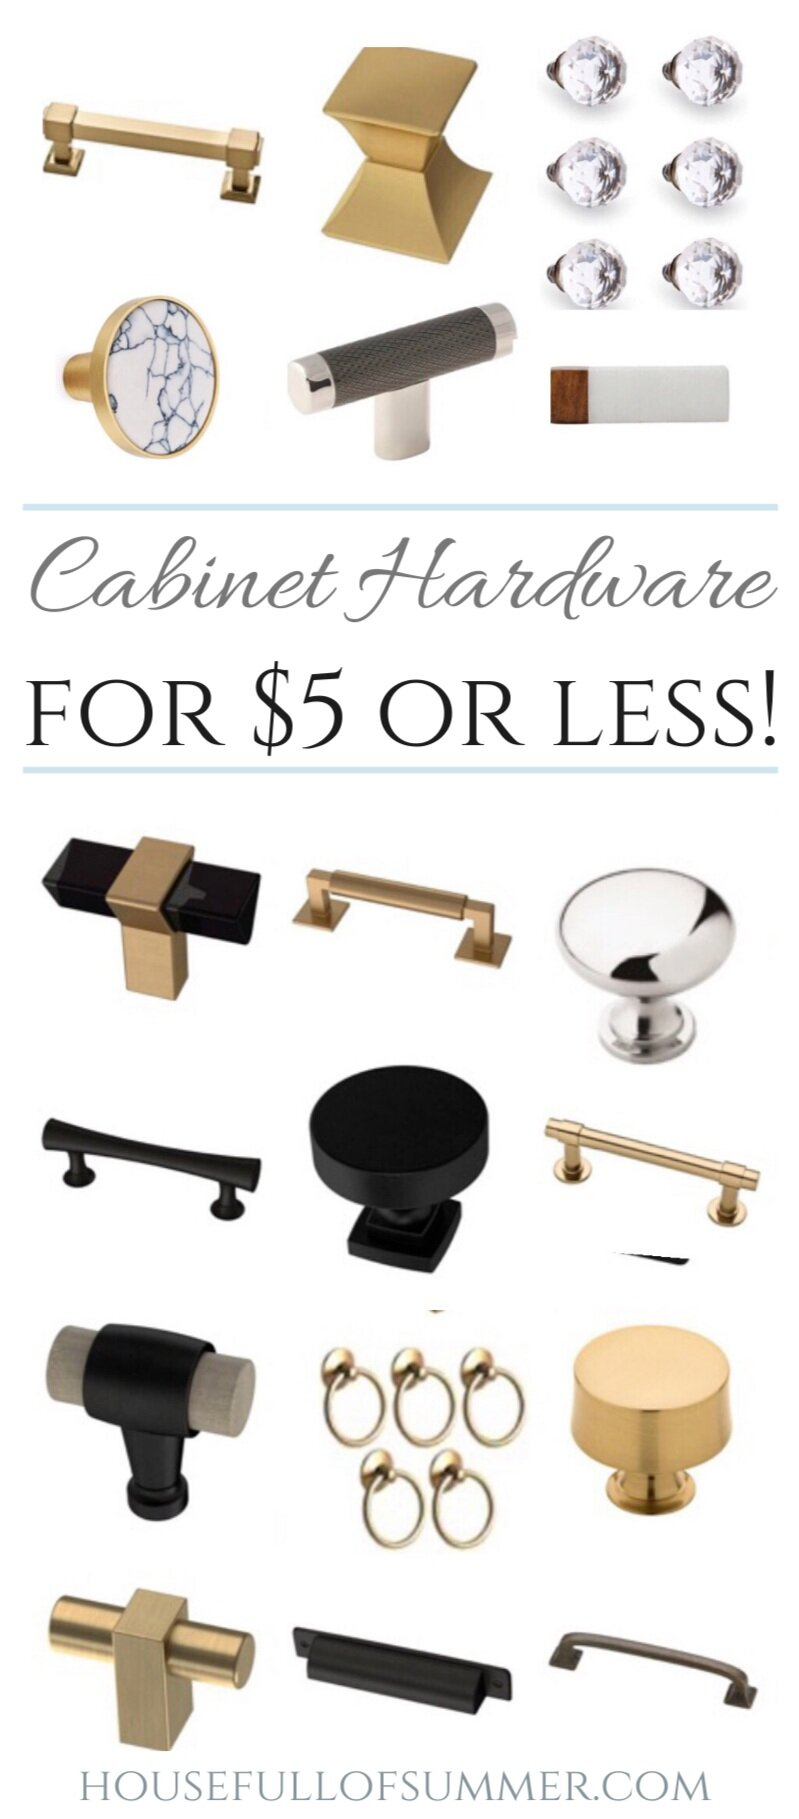 On Trend Cabinet Hardware For 5 Or Less House Full Of Summer Coastal Home Lifestyle